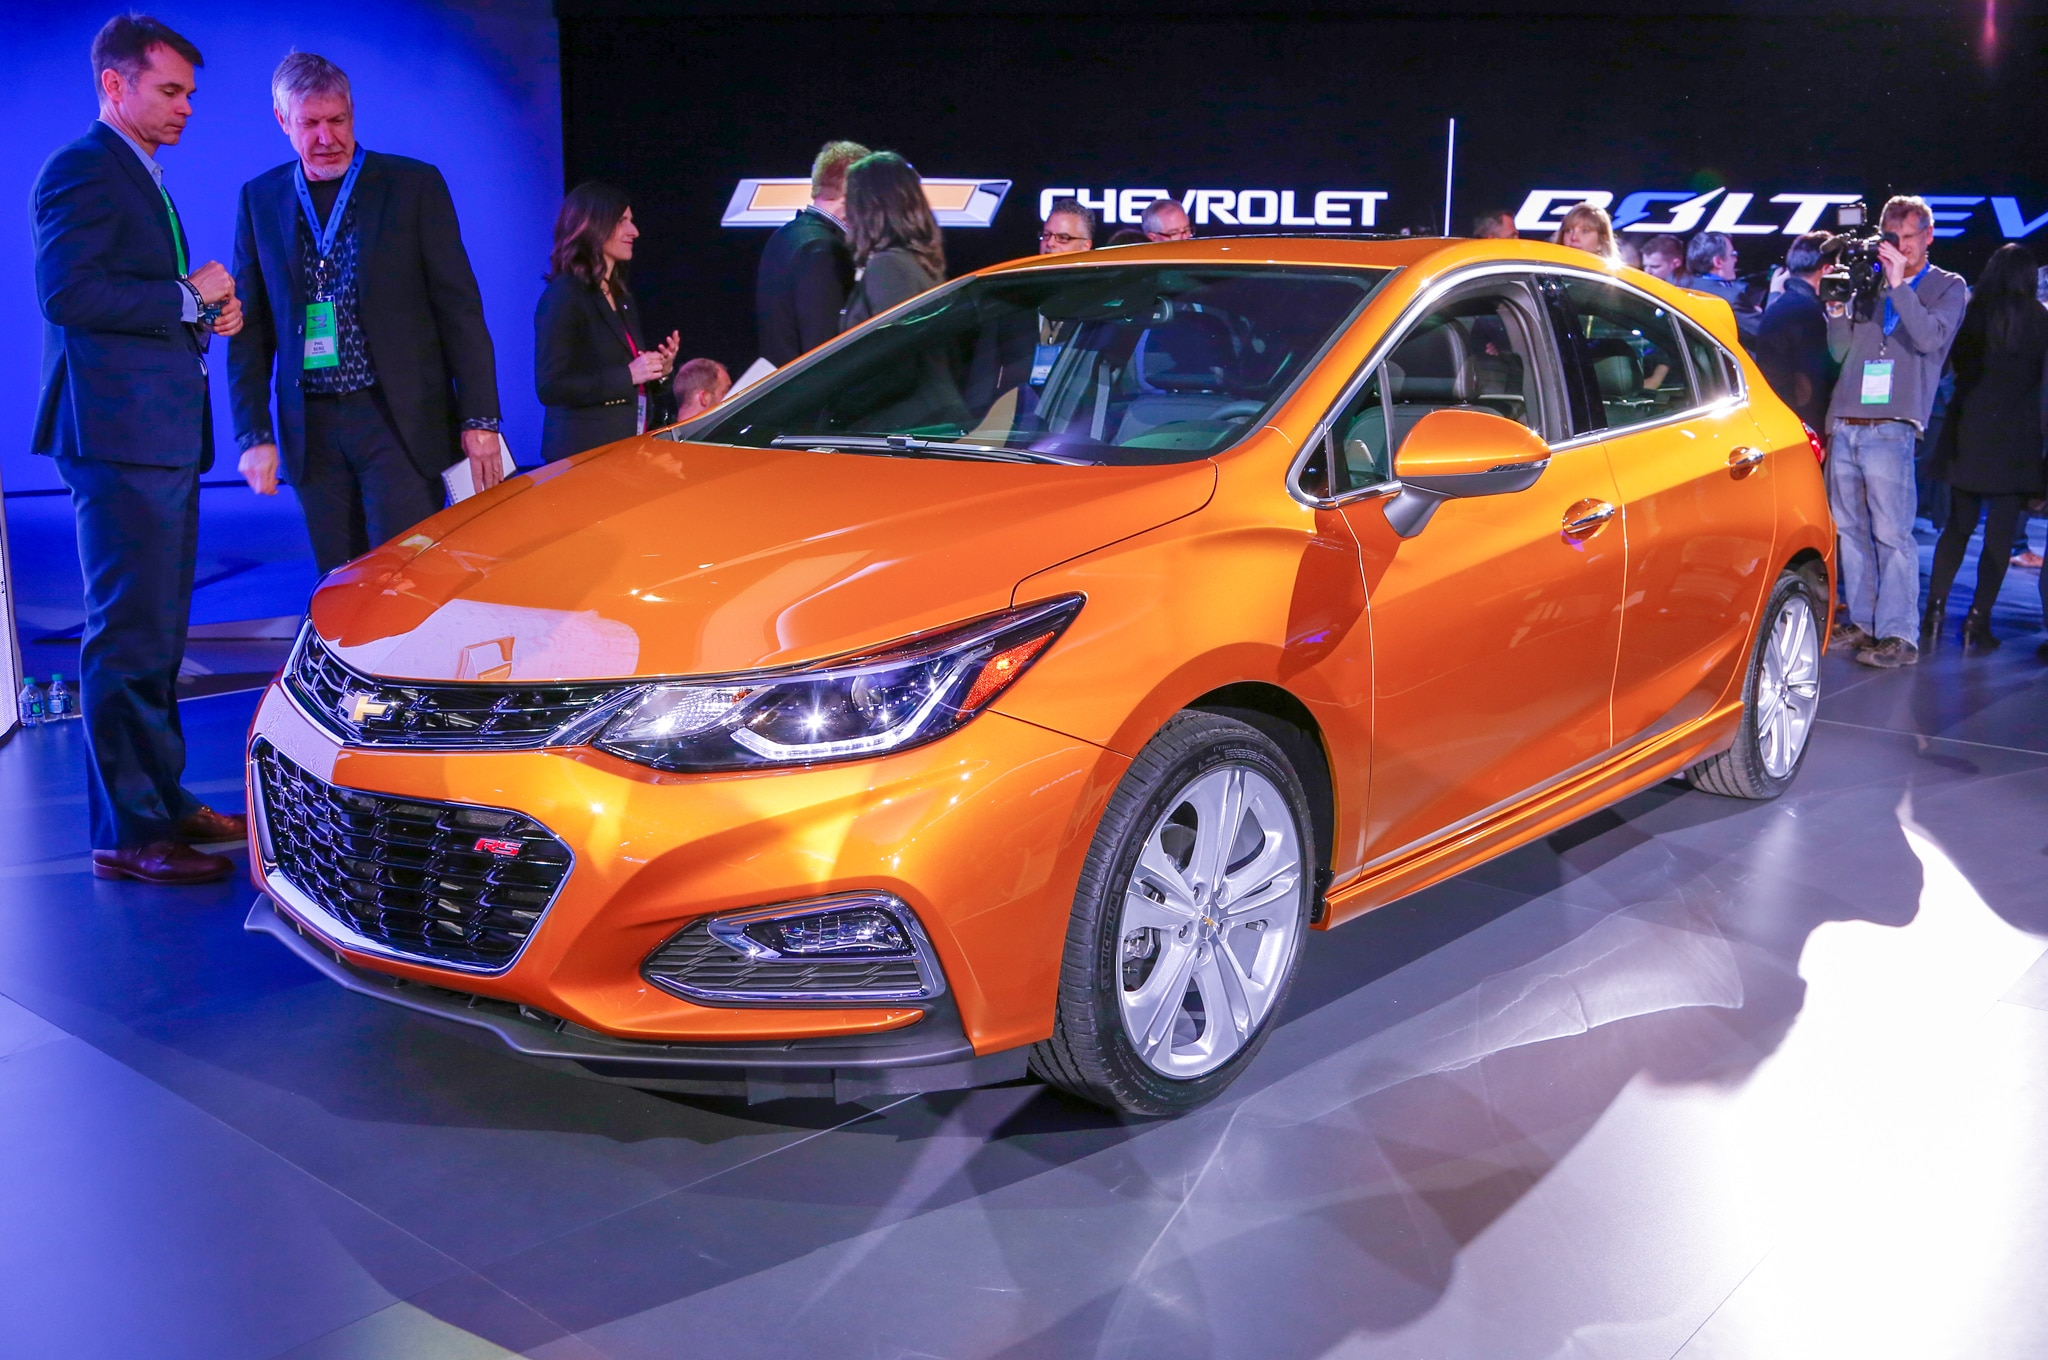 Chevy Cruze Diesel For Sale >> 2017 Chevrolet Cruze Hatch Unveiled Ahead of Detroit Debut